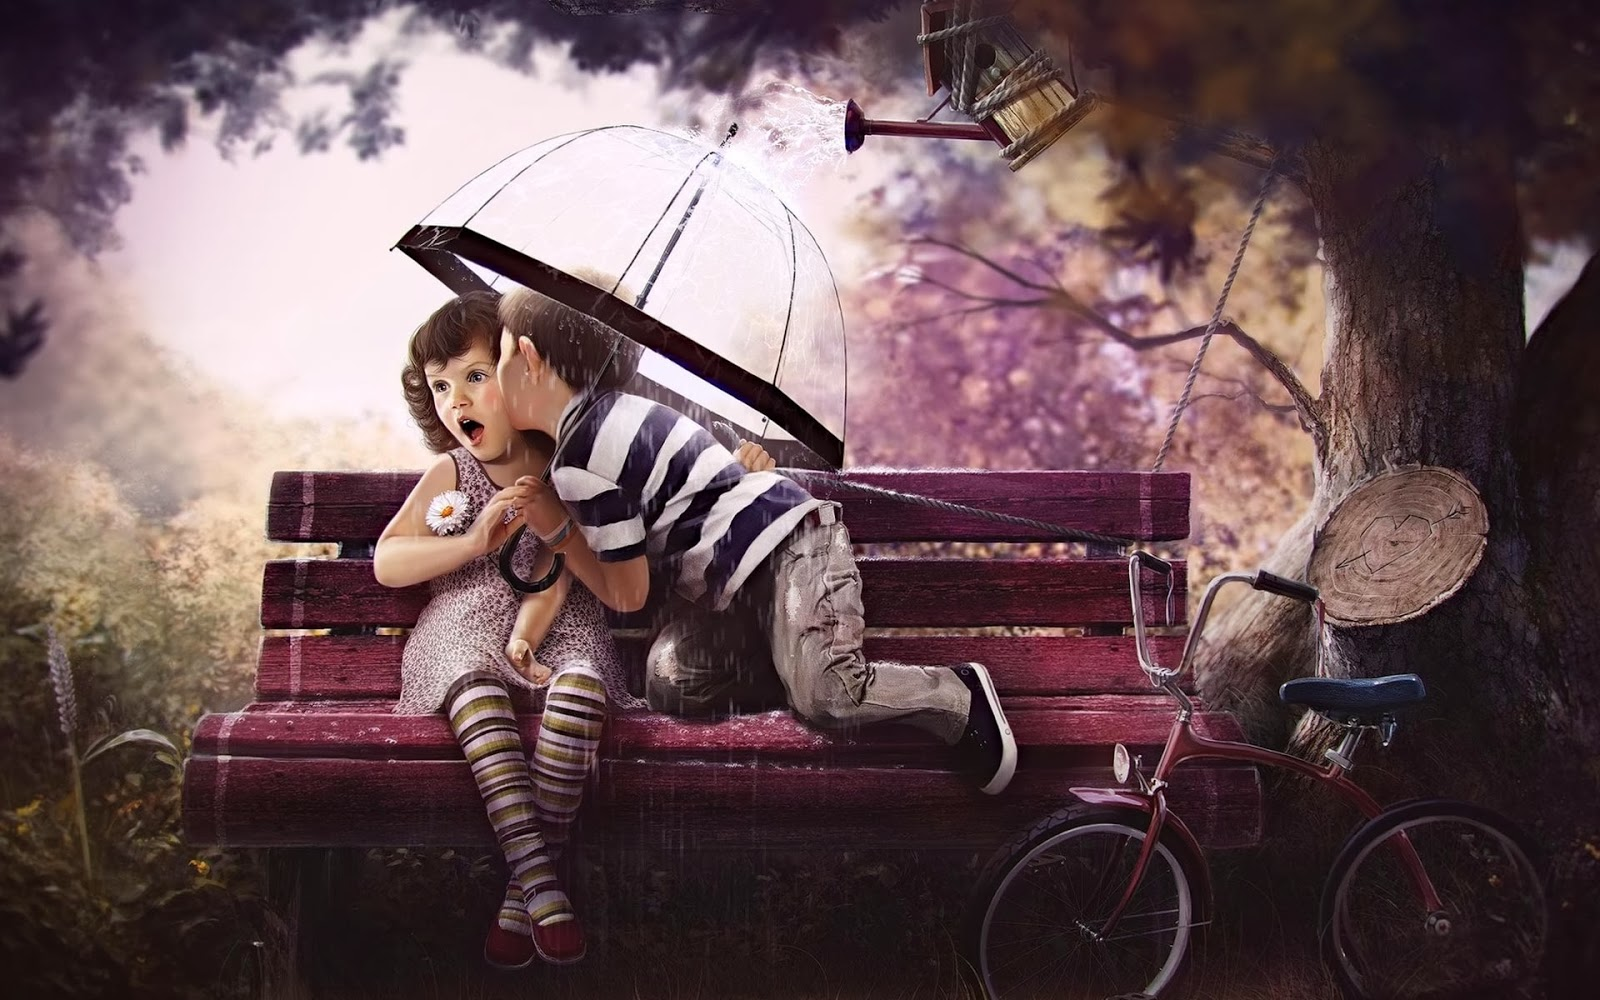 Cute little love couple pictures hd free download cute lover boy kiss girl cartoon images card altavistaventures Images